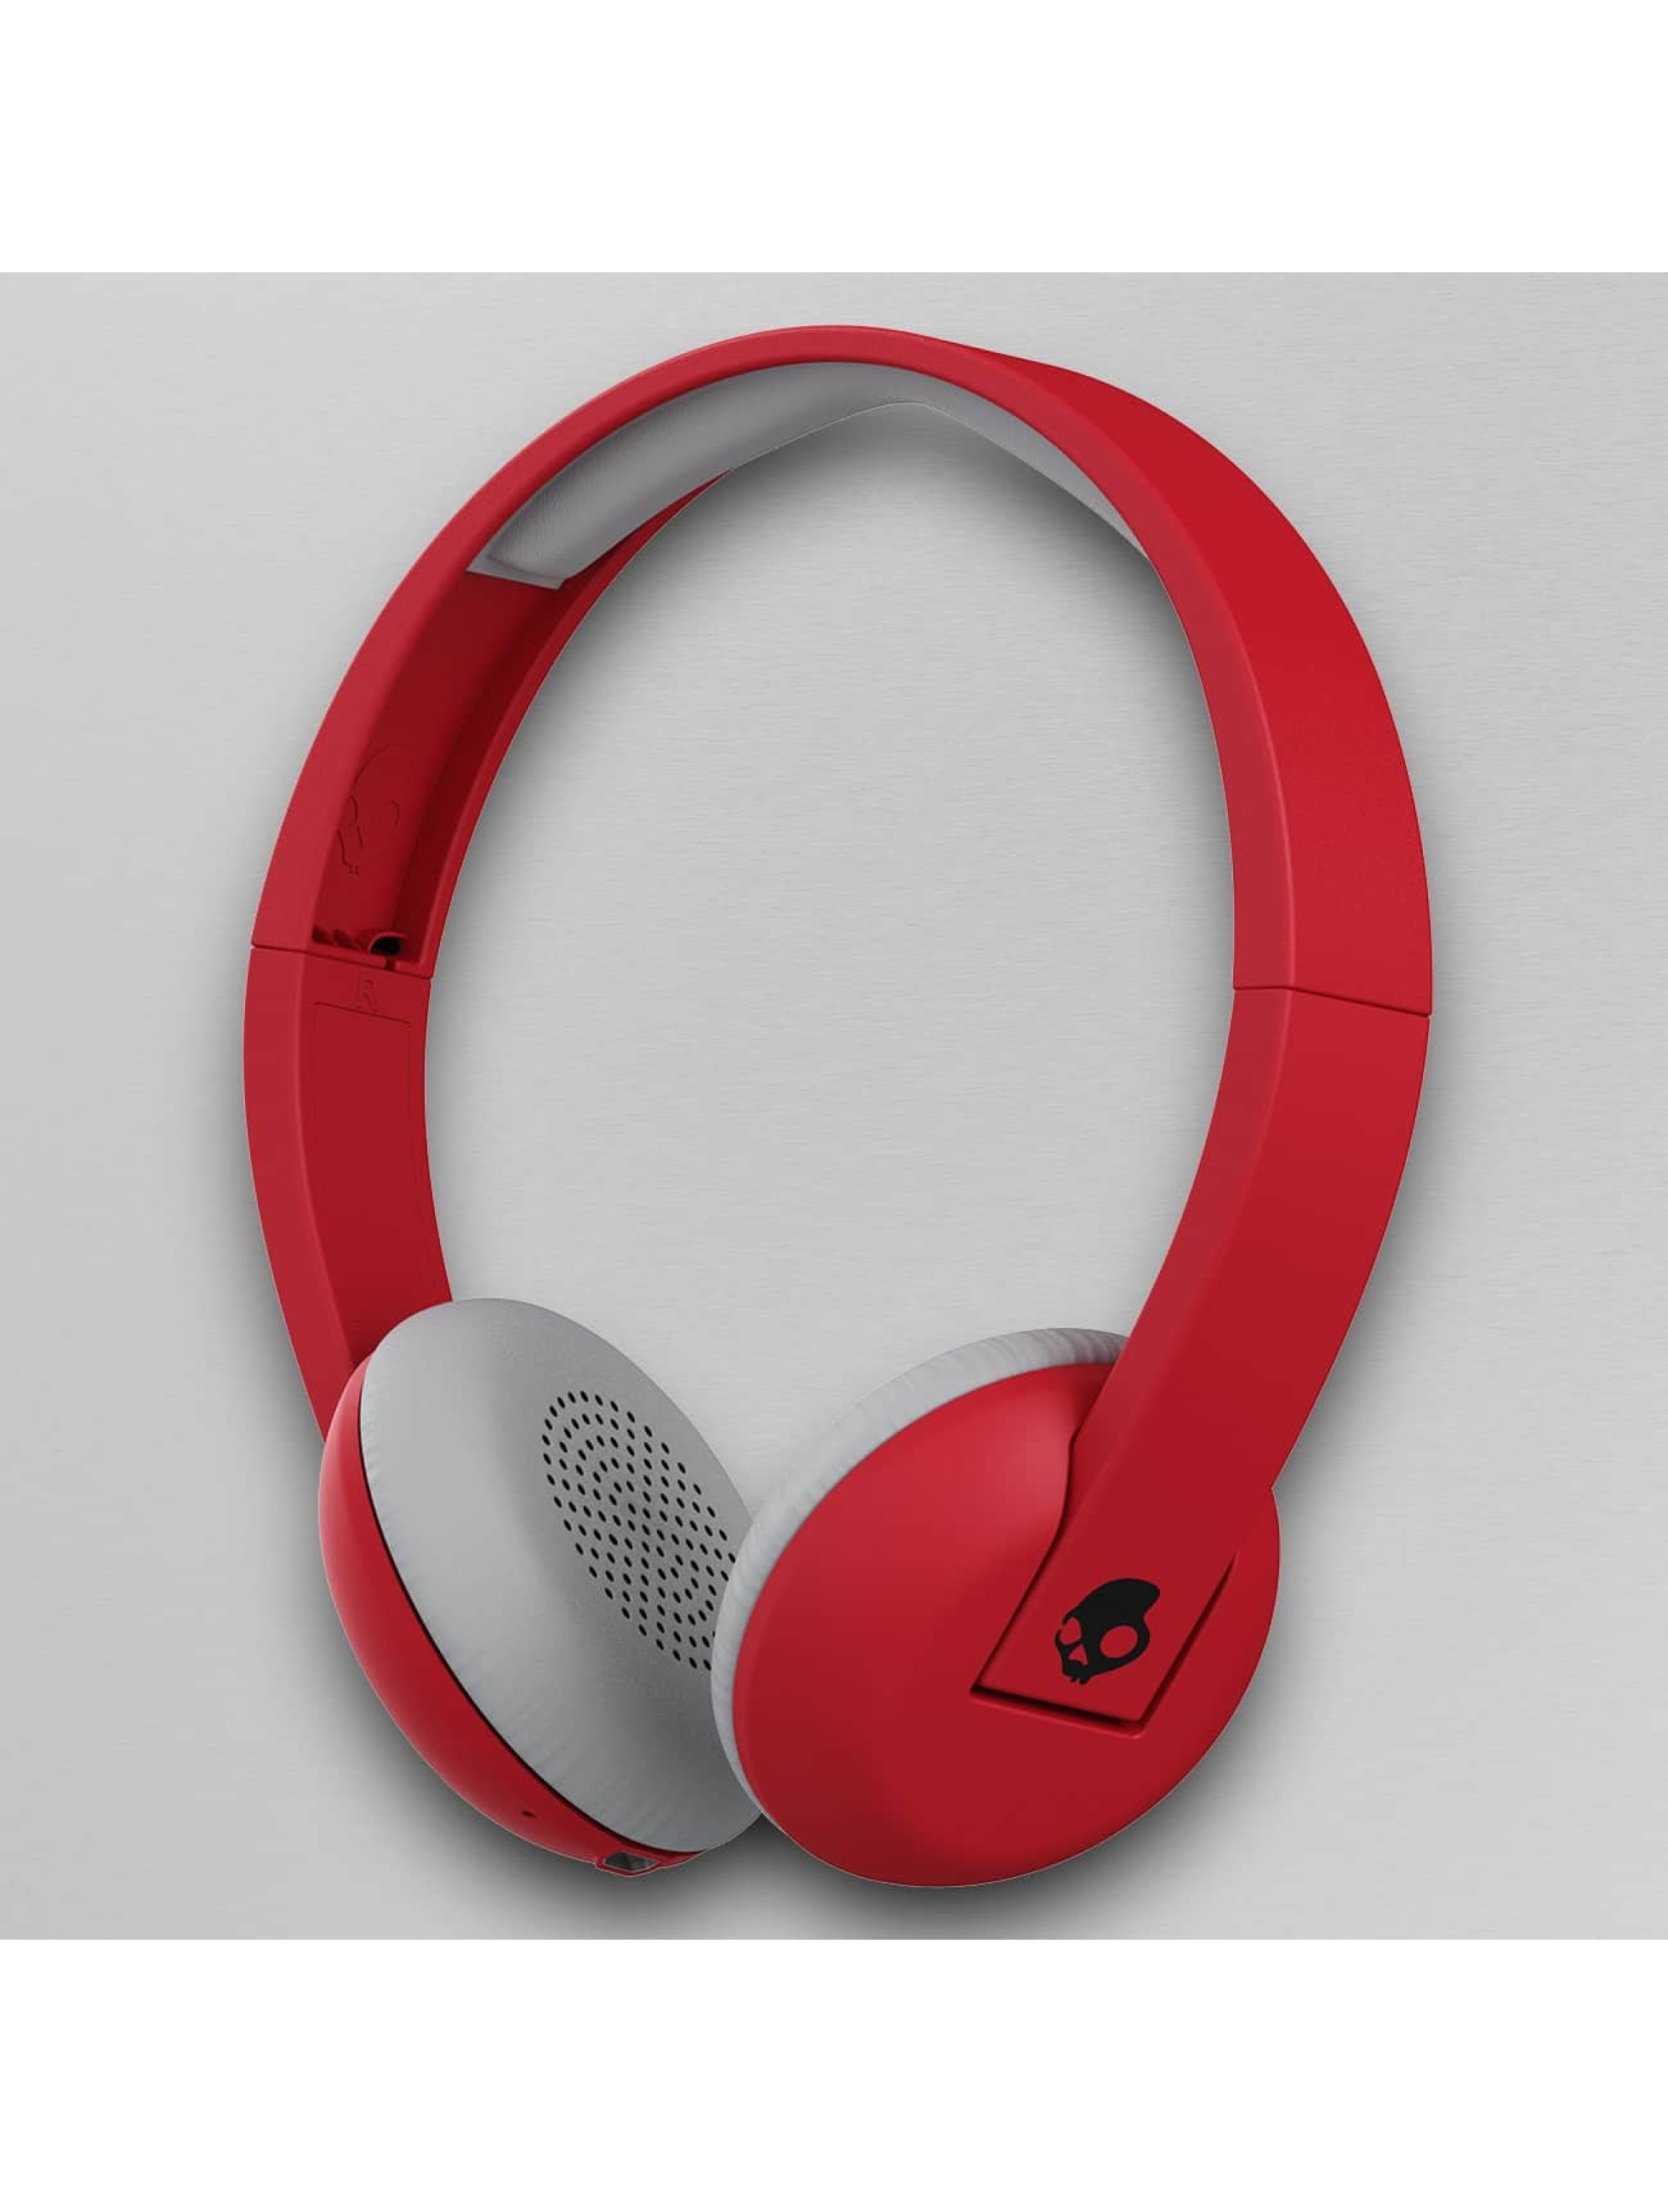 Skullcandy Männer,Frauen Kopfhörer Uproar Wireless On Ear in rot